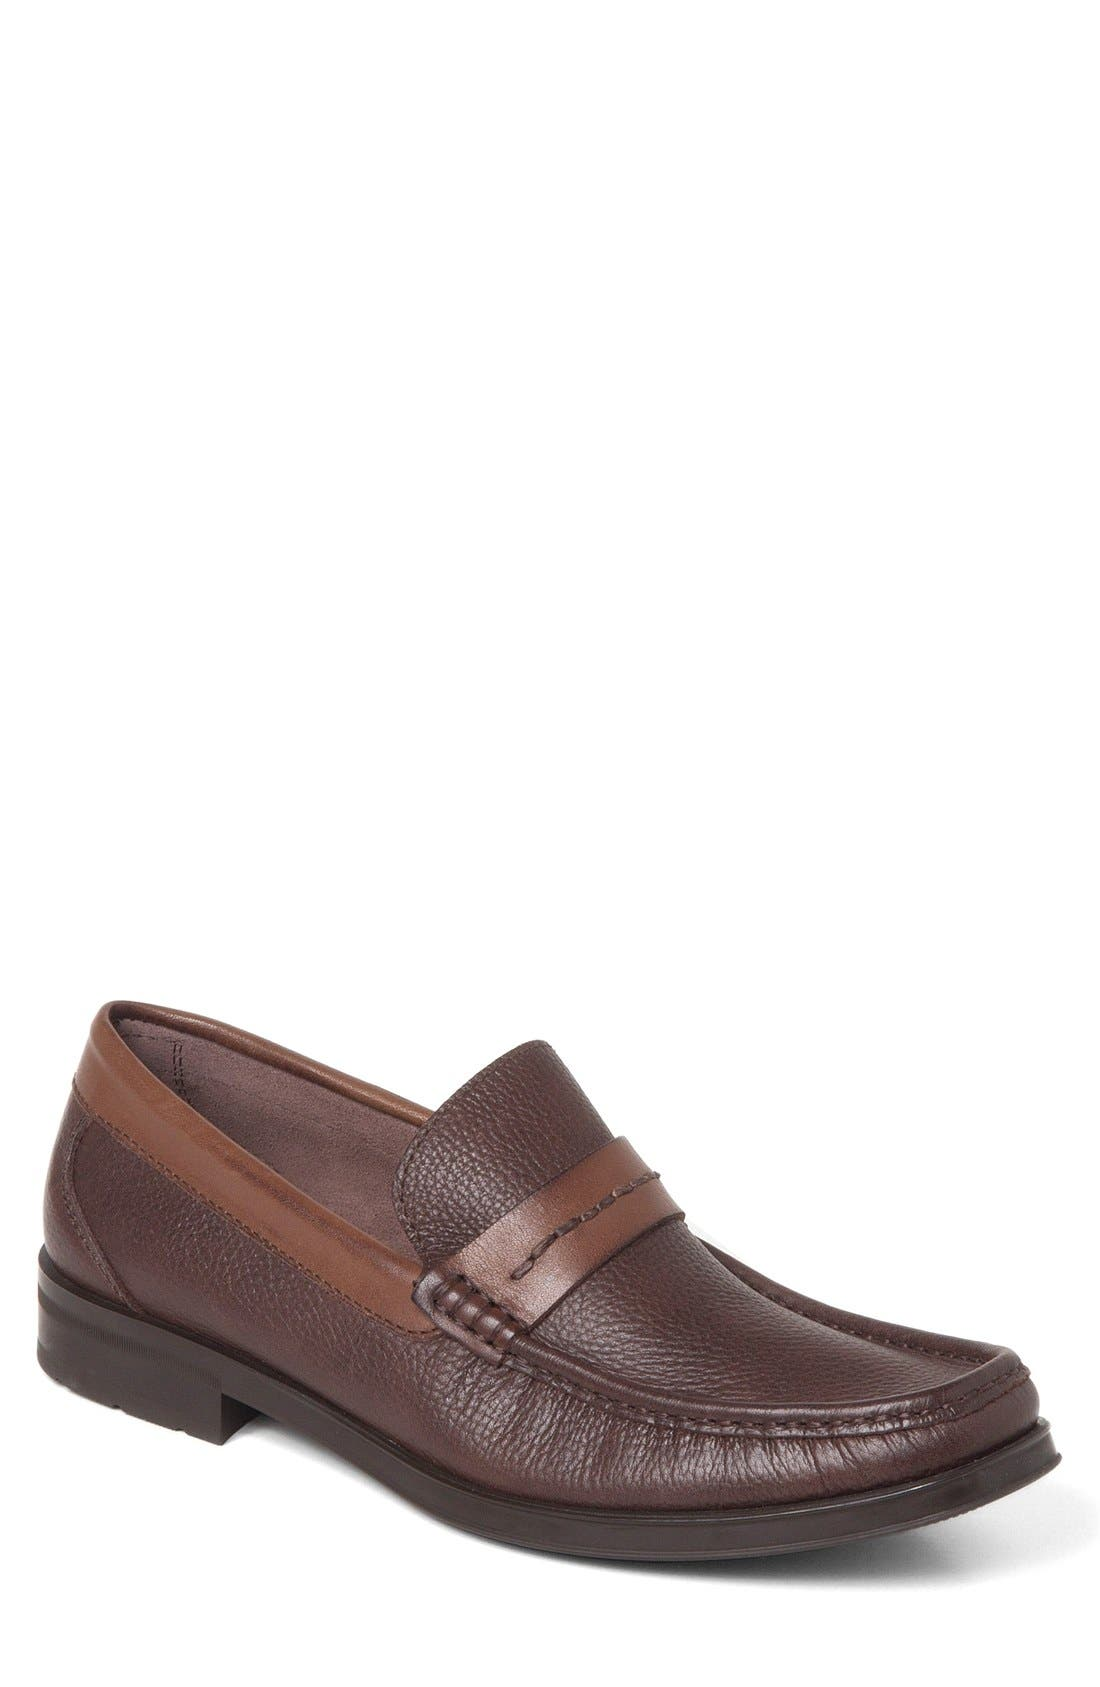 Duero Loafer,                             Main thumbnail 1, color,                             Brown Leather